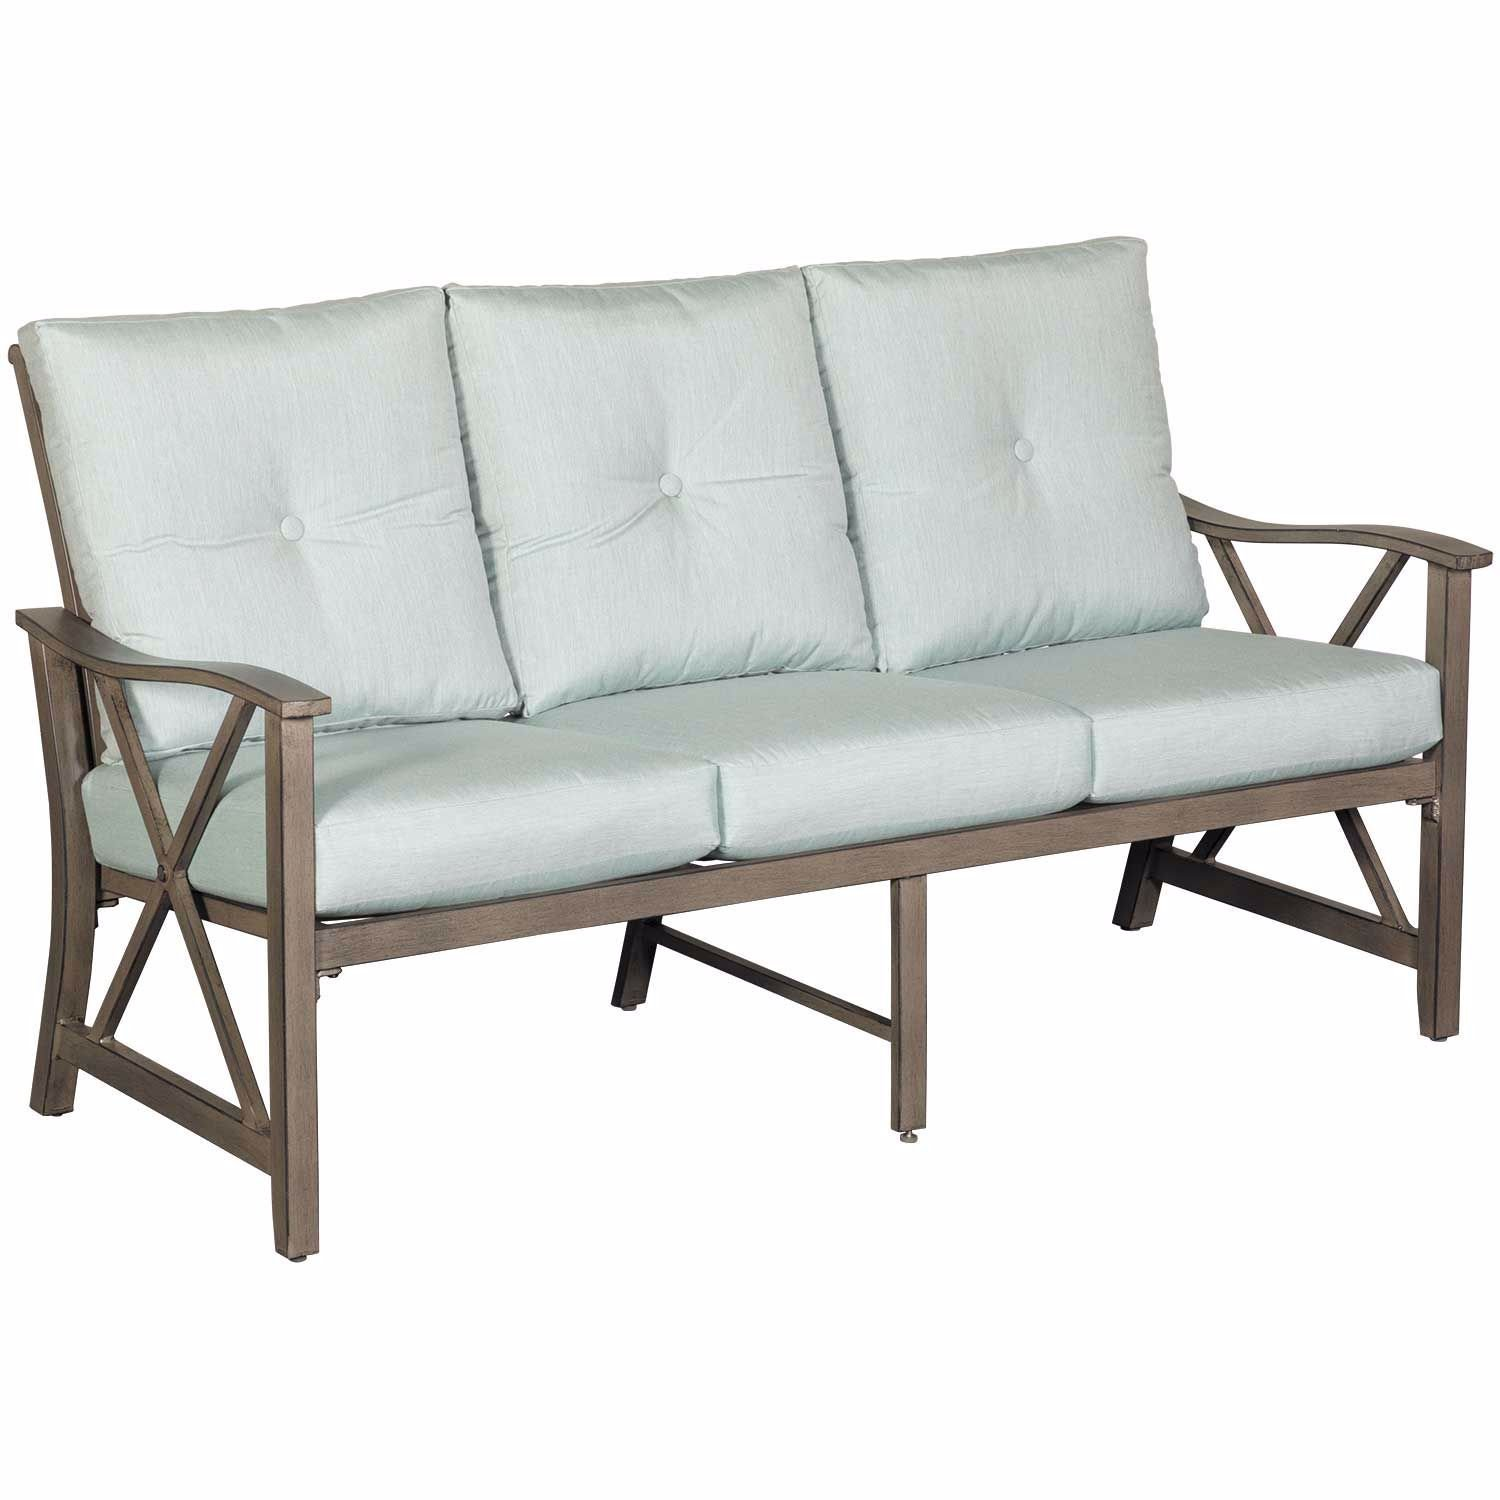 Picture of Bridgeman Outdoor Sofa with Cushion